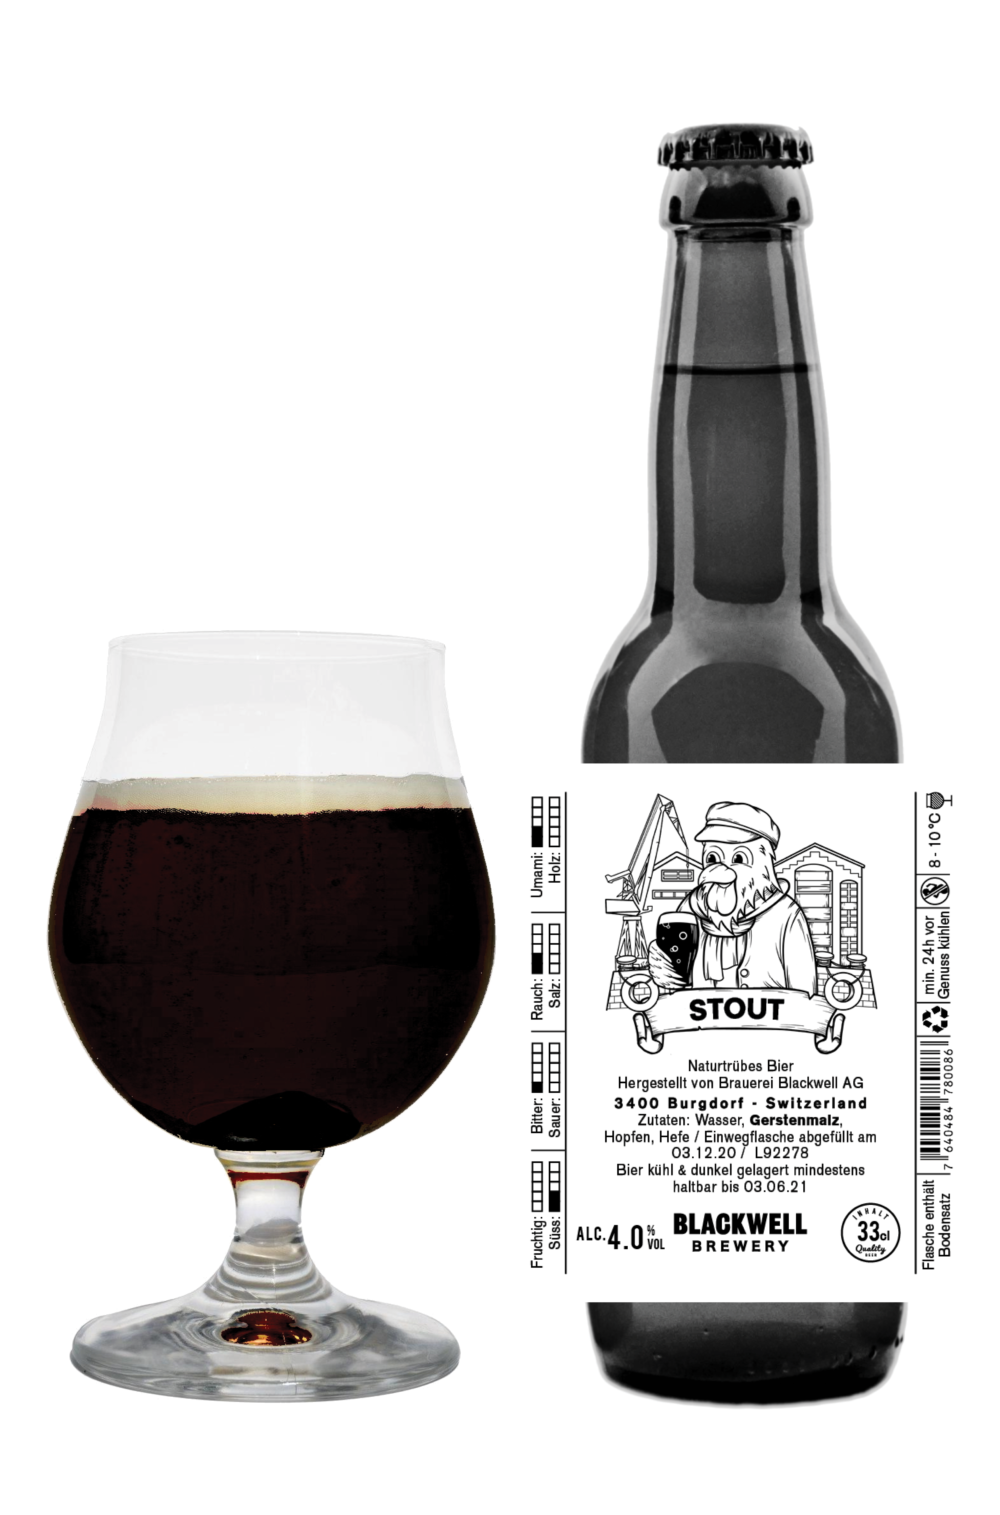 https://blackwellbrewery.ch/wp-content/uploads/2020/05/Stout_Blackwell-1-e1614258149516.png